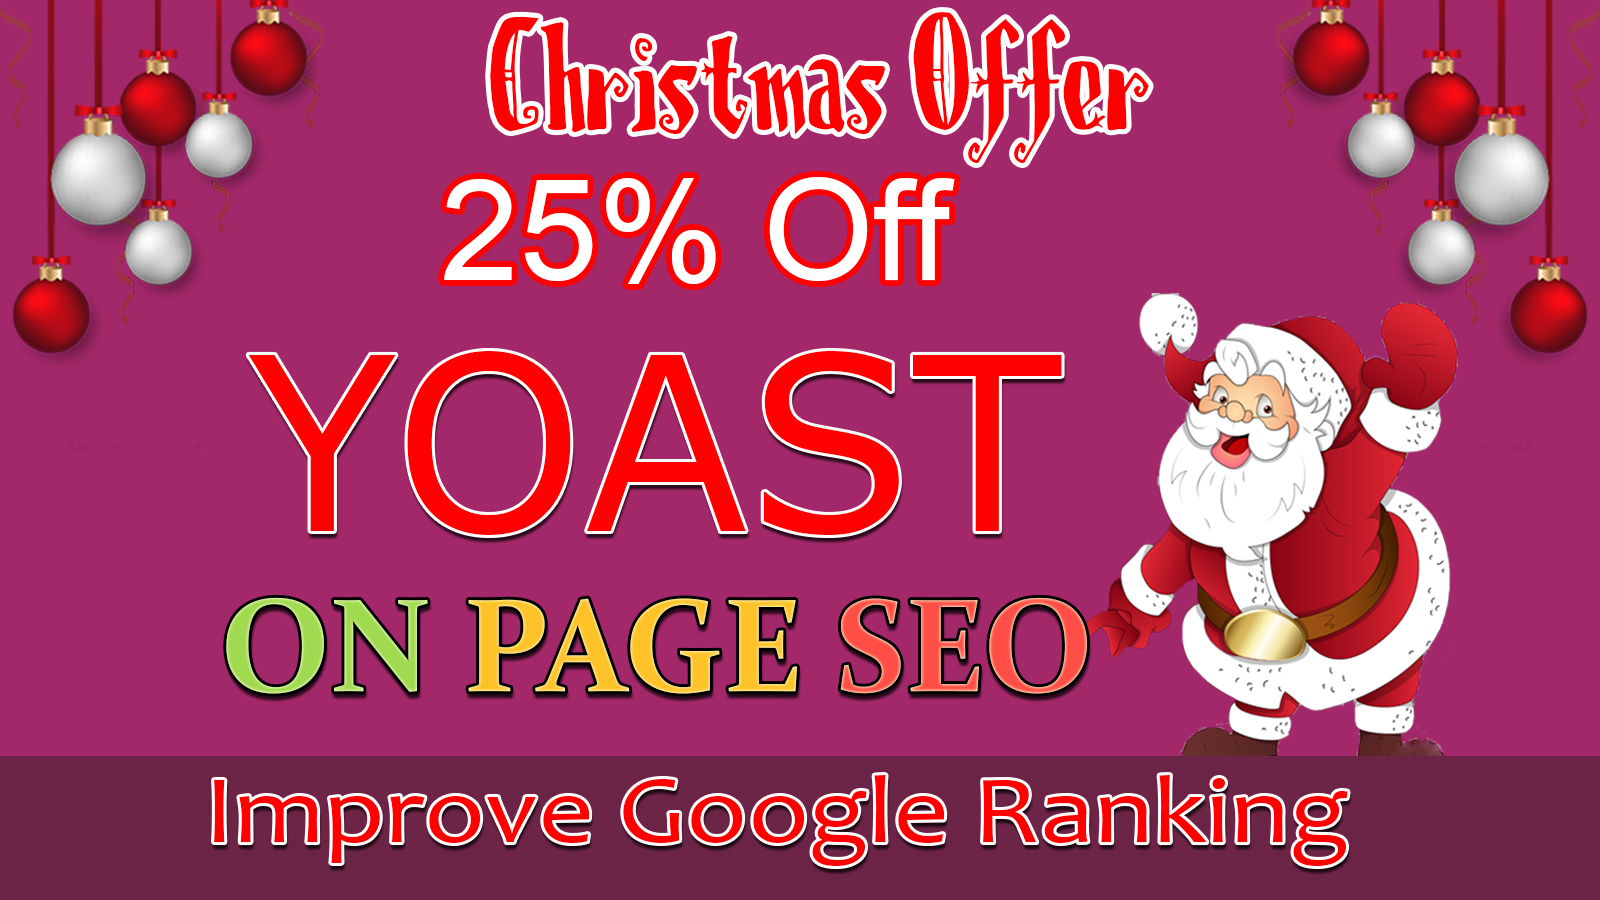 I will do yoast wordpress ON page SEO with yoast premium plugin